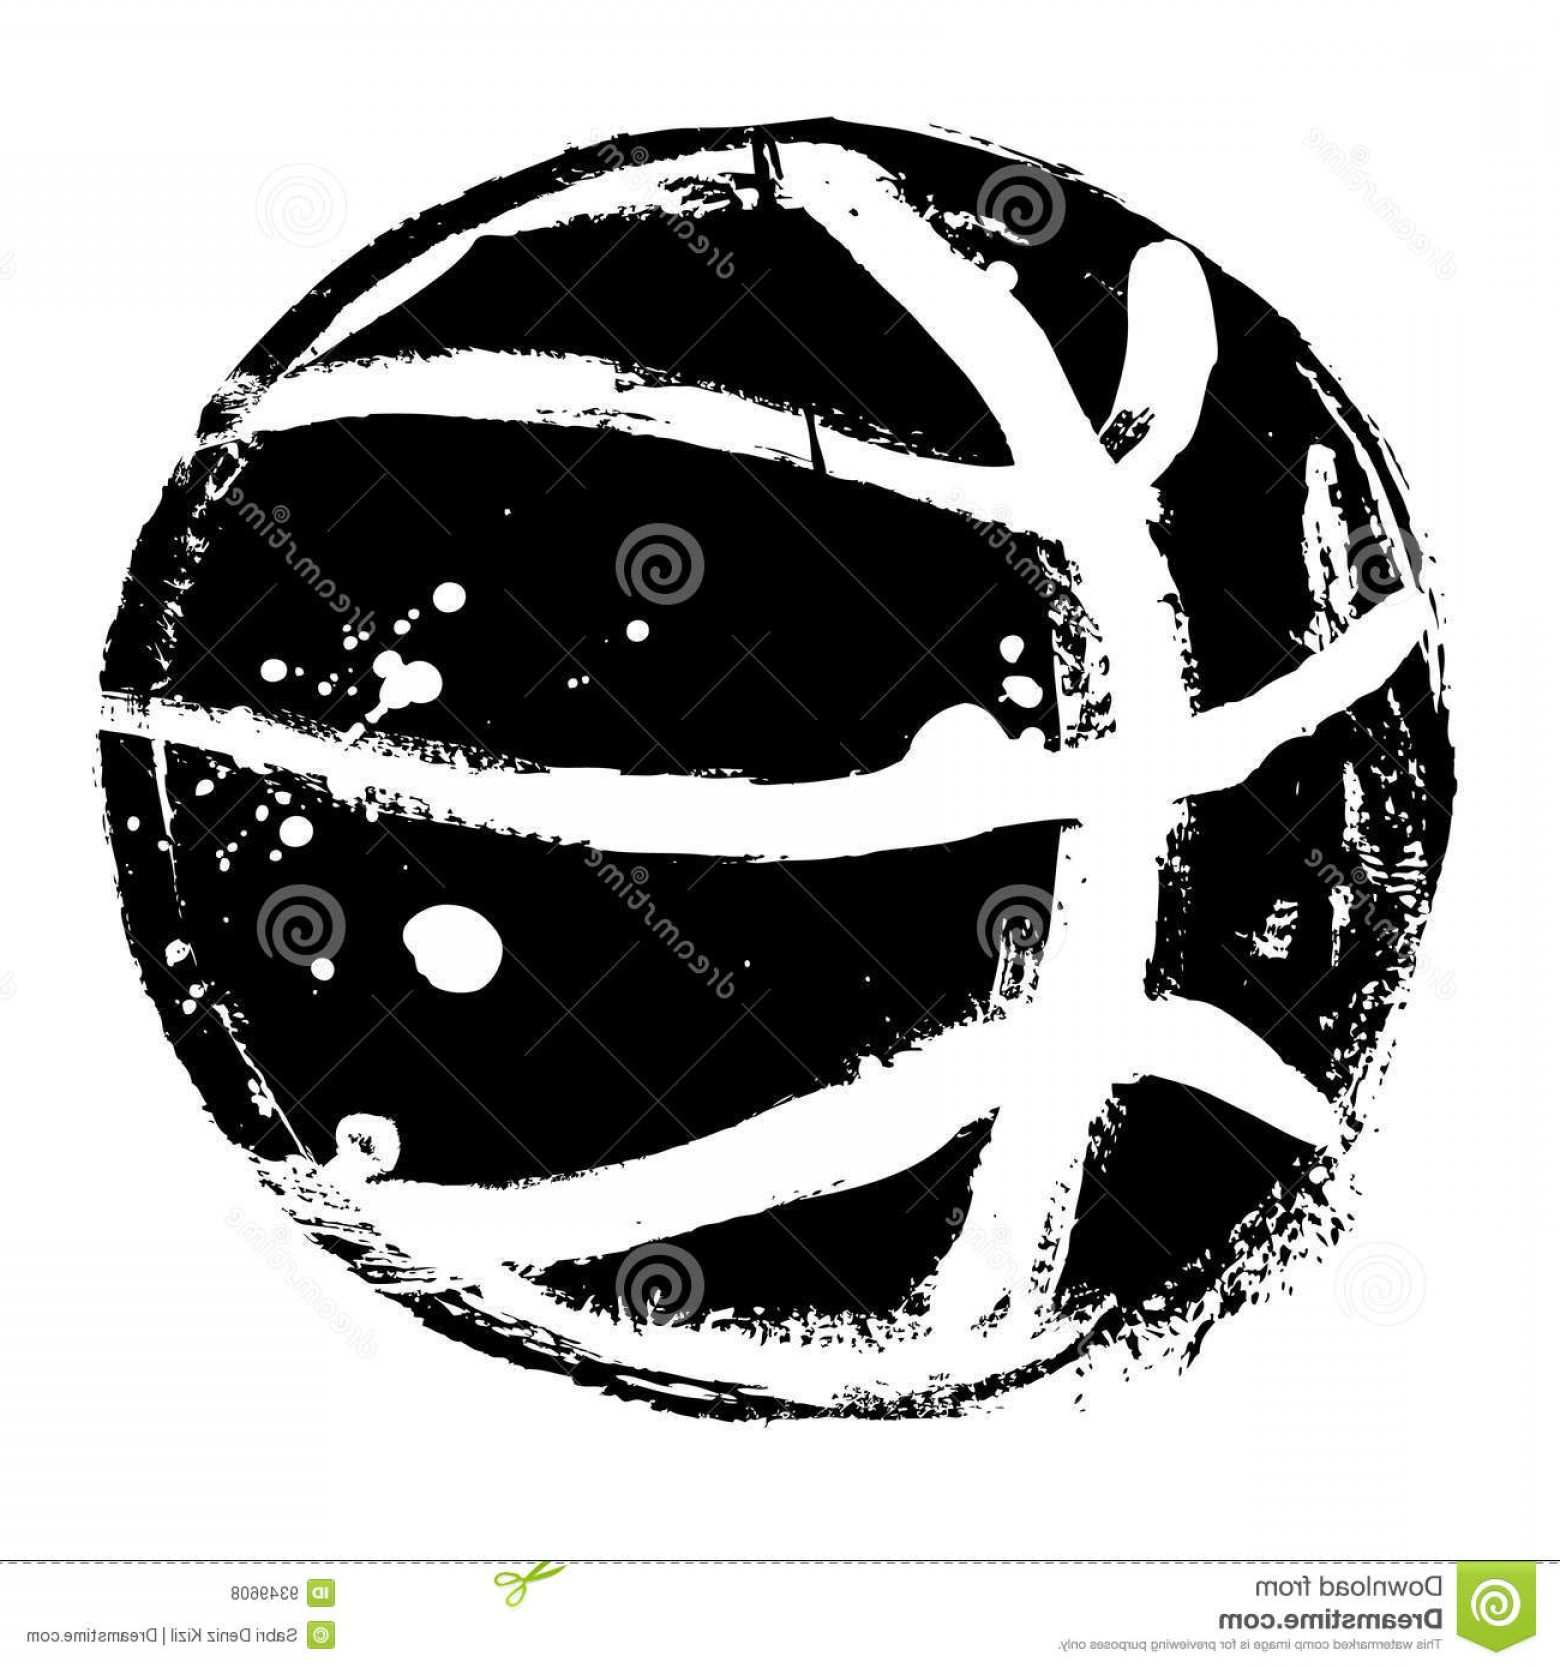 Vintage Basketball Vector: Royalty Free Stock Photos Grunge Basketball Vector Image